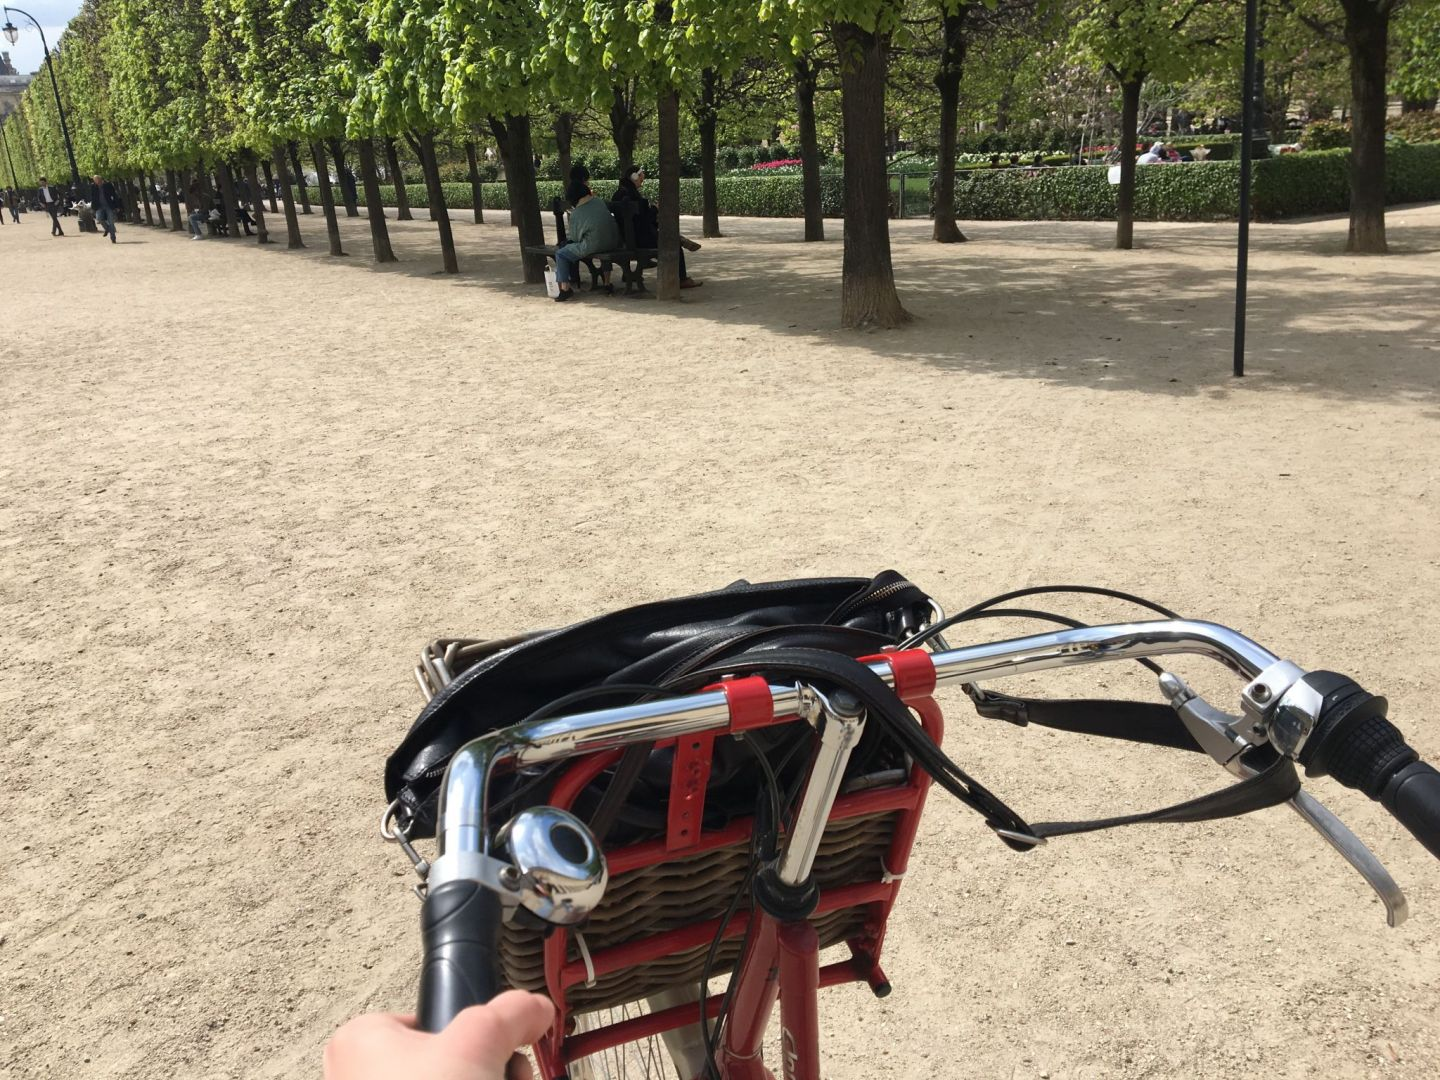 My week 15: First biking tour and a concert in Paris